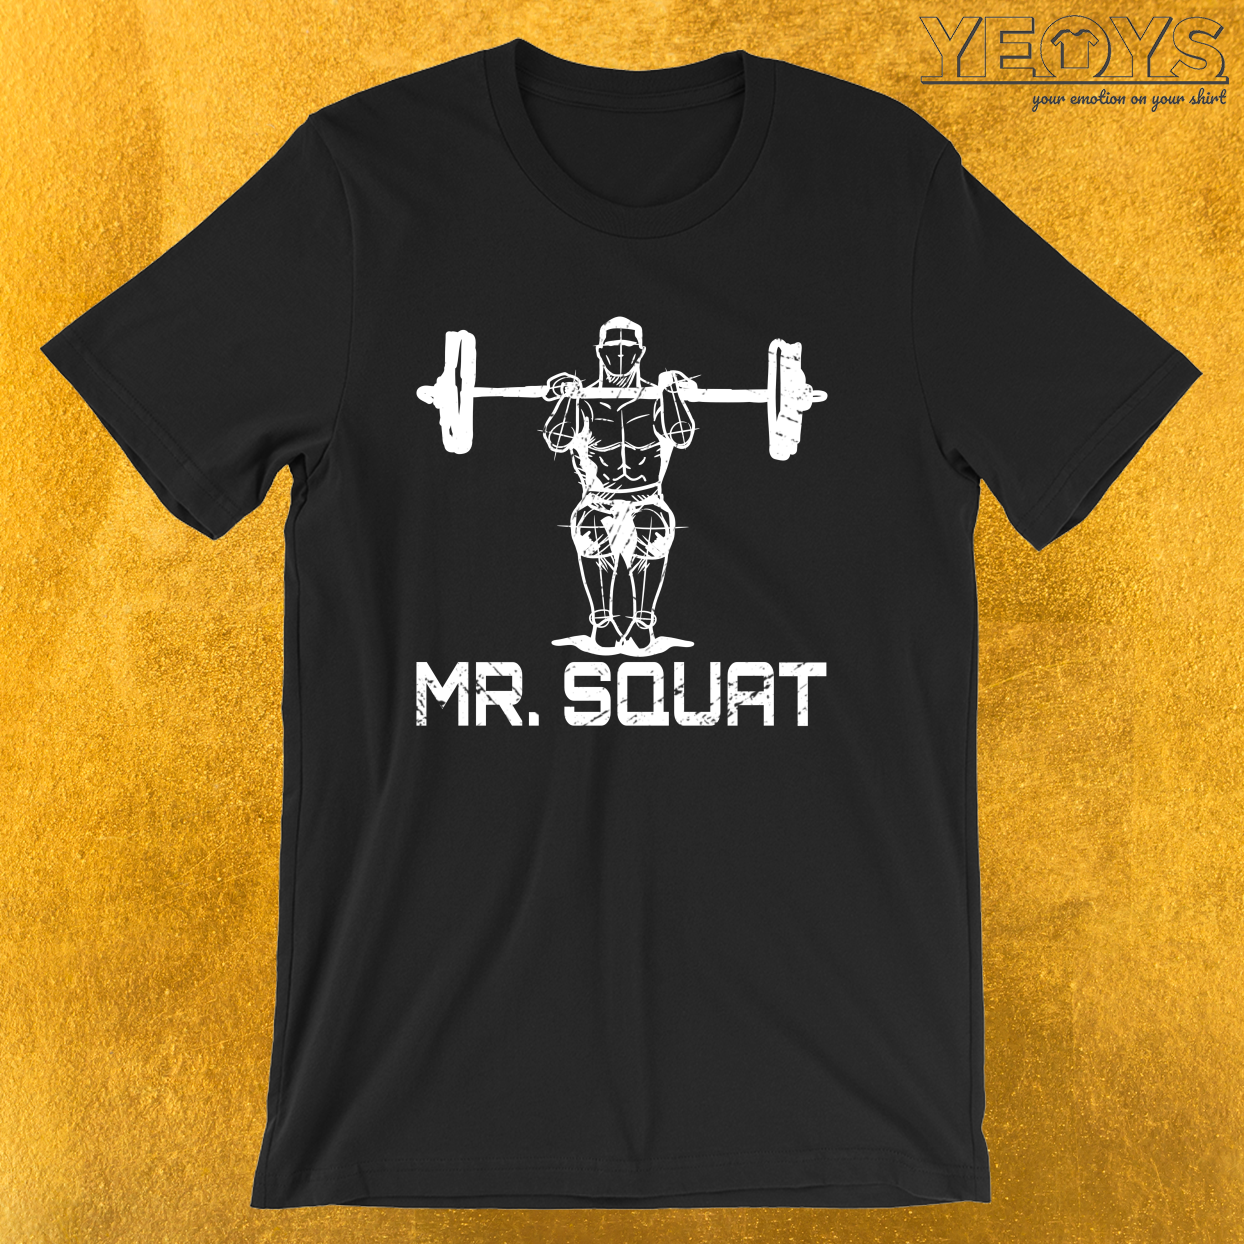 Mr. Squat – Squating Tee